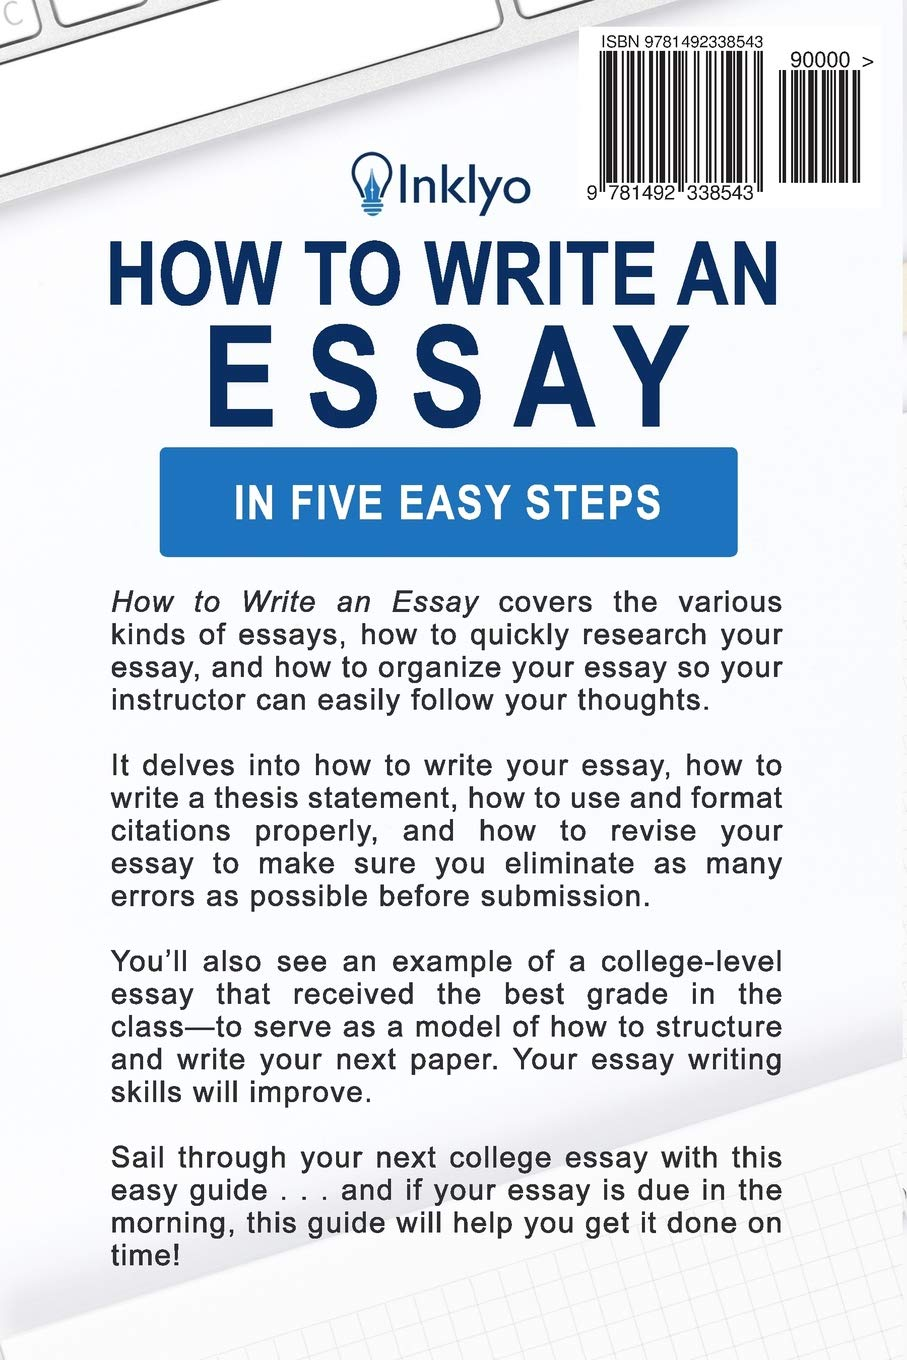 003 How To Write Essay Example Archaicawful A History Research Outline Introduction Full